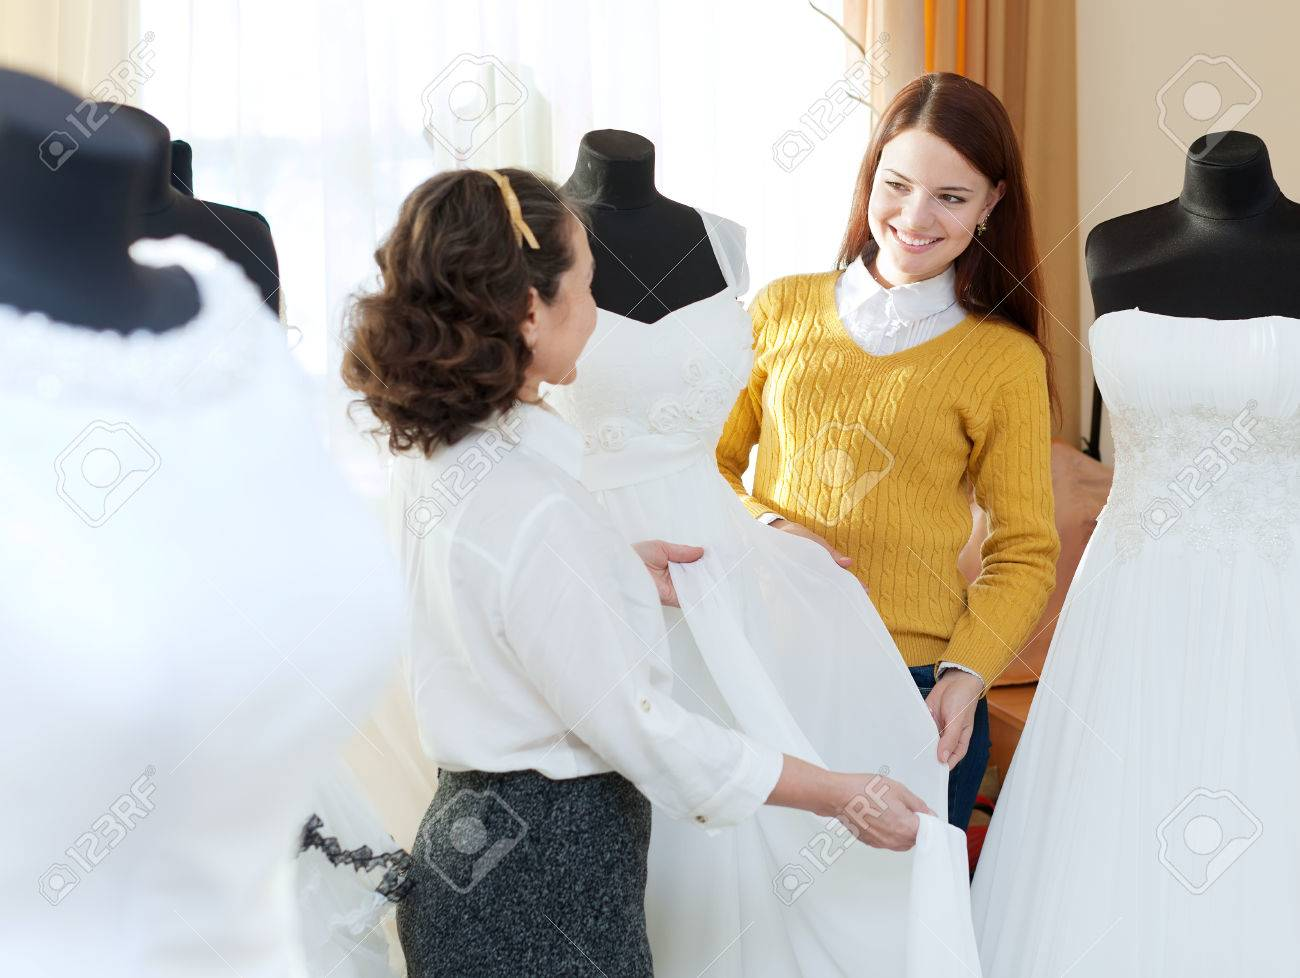 Pretty Bride Chooses Bridal Dress At Wedding Store Shop Consultant Stock Photo Picture And Royalty Free Image Image 24282983